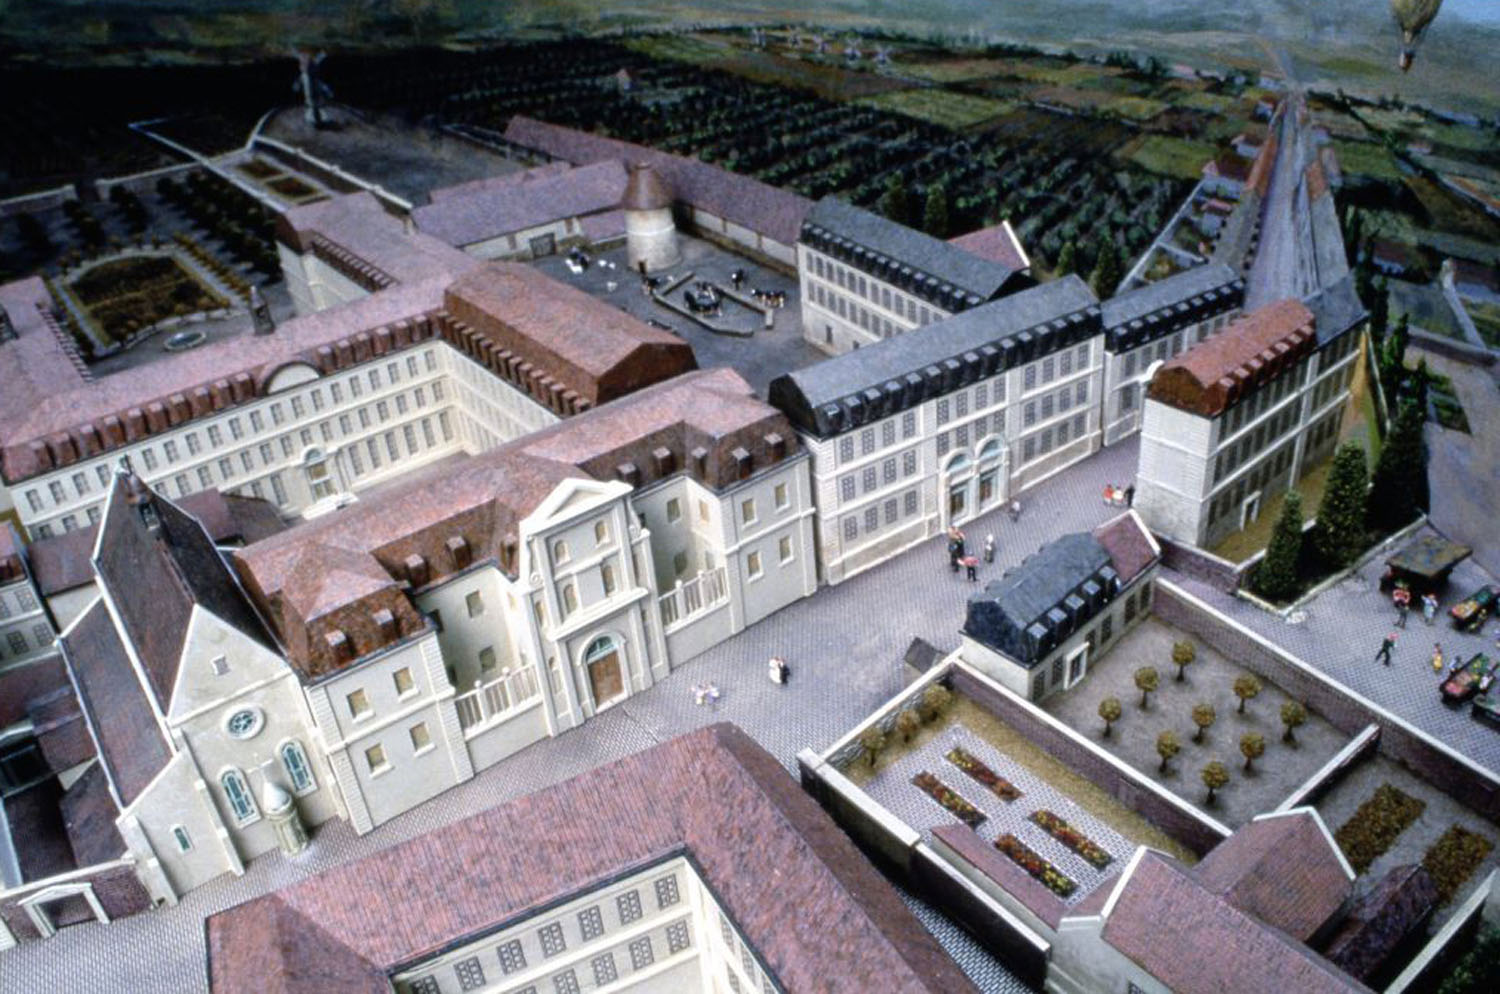 View of the Buildings and Second Courtyard